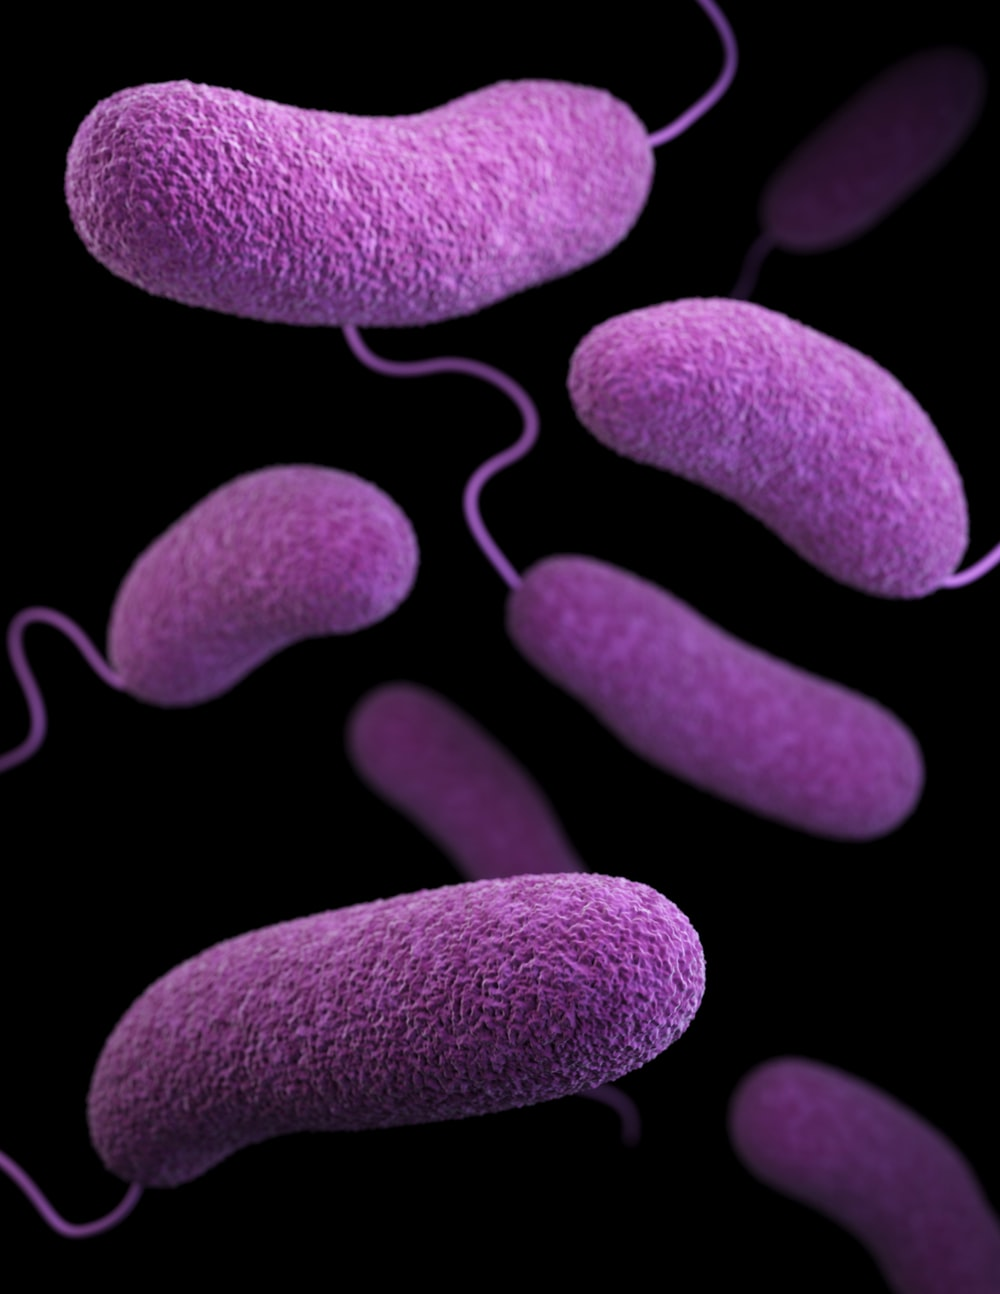 Bacteria Pictures Hd Download Free Images On Unsplash